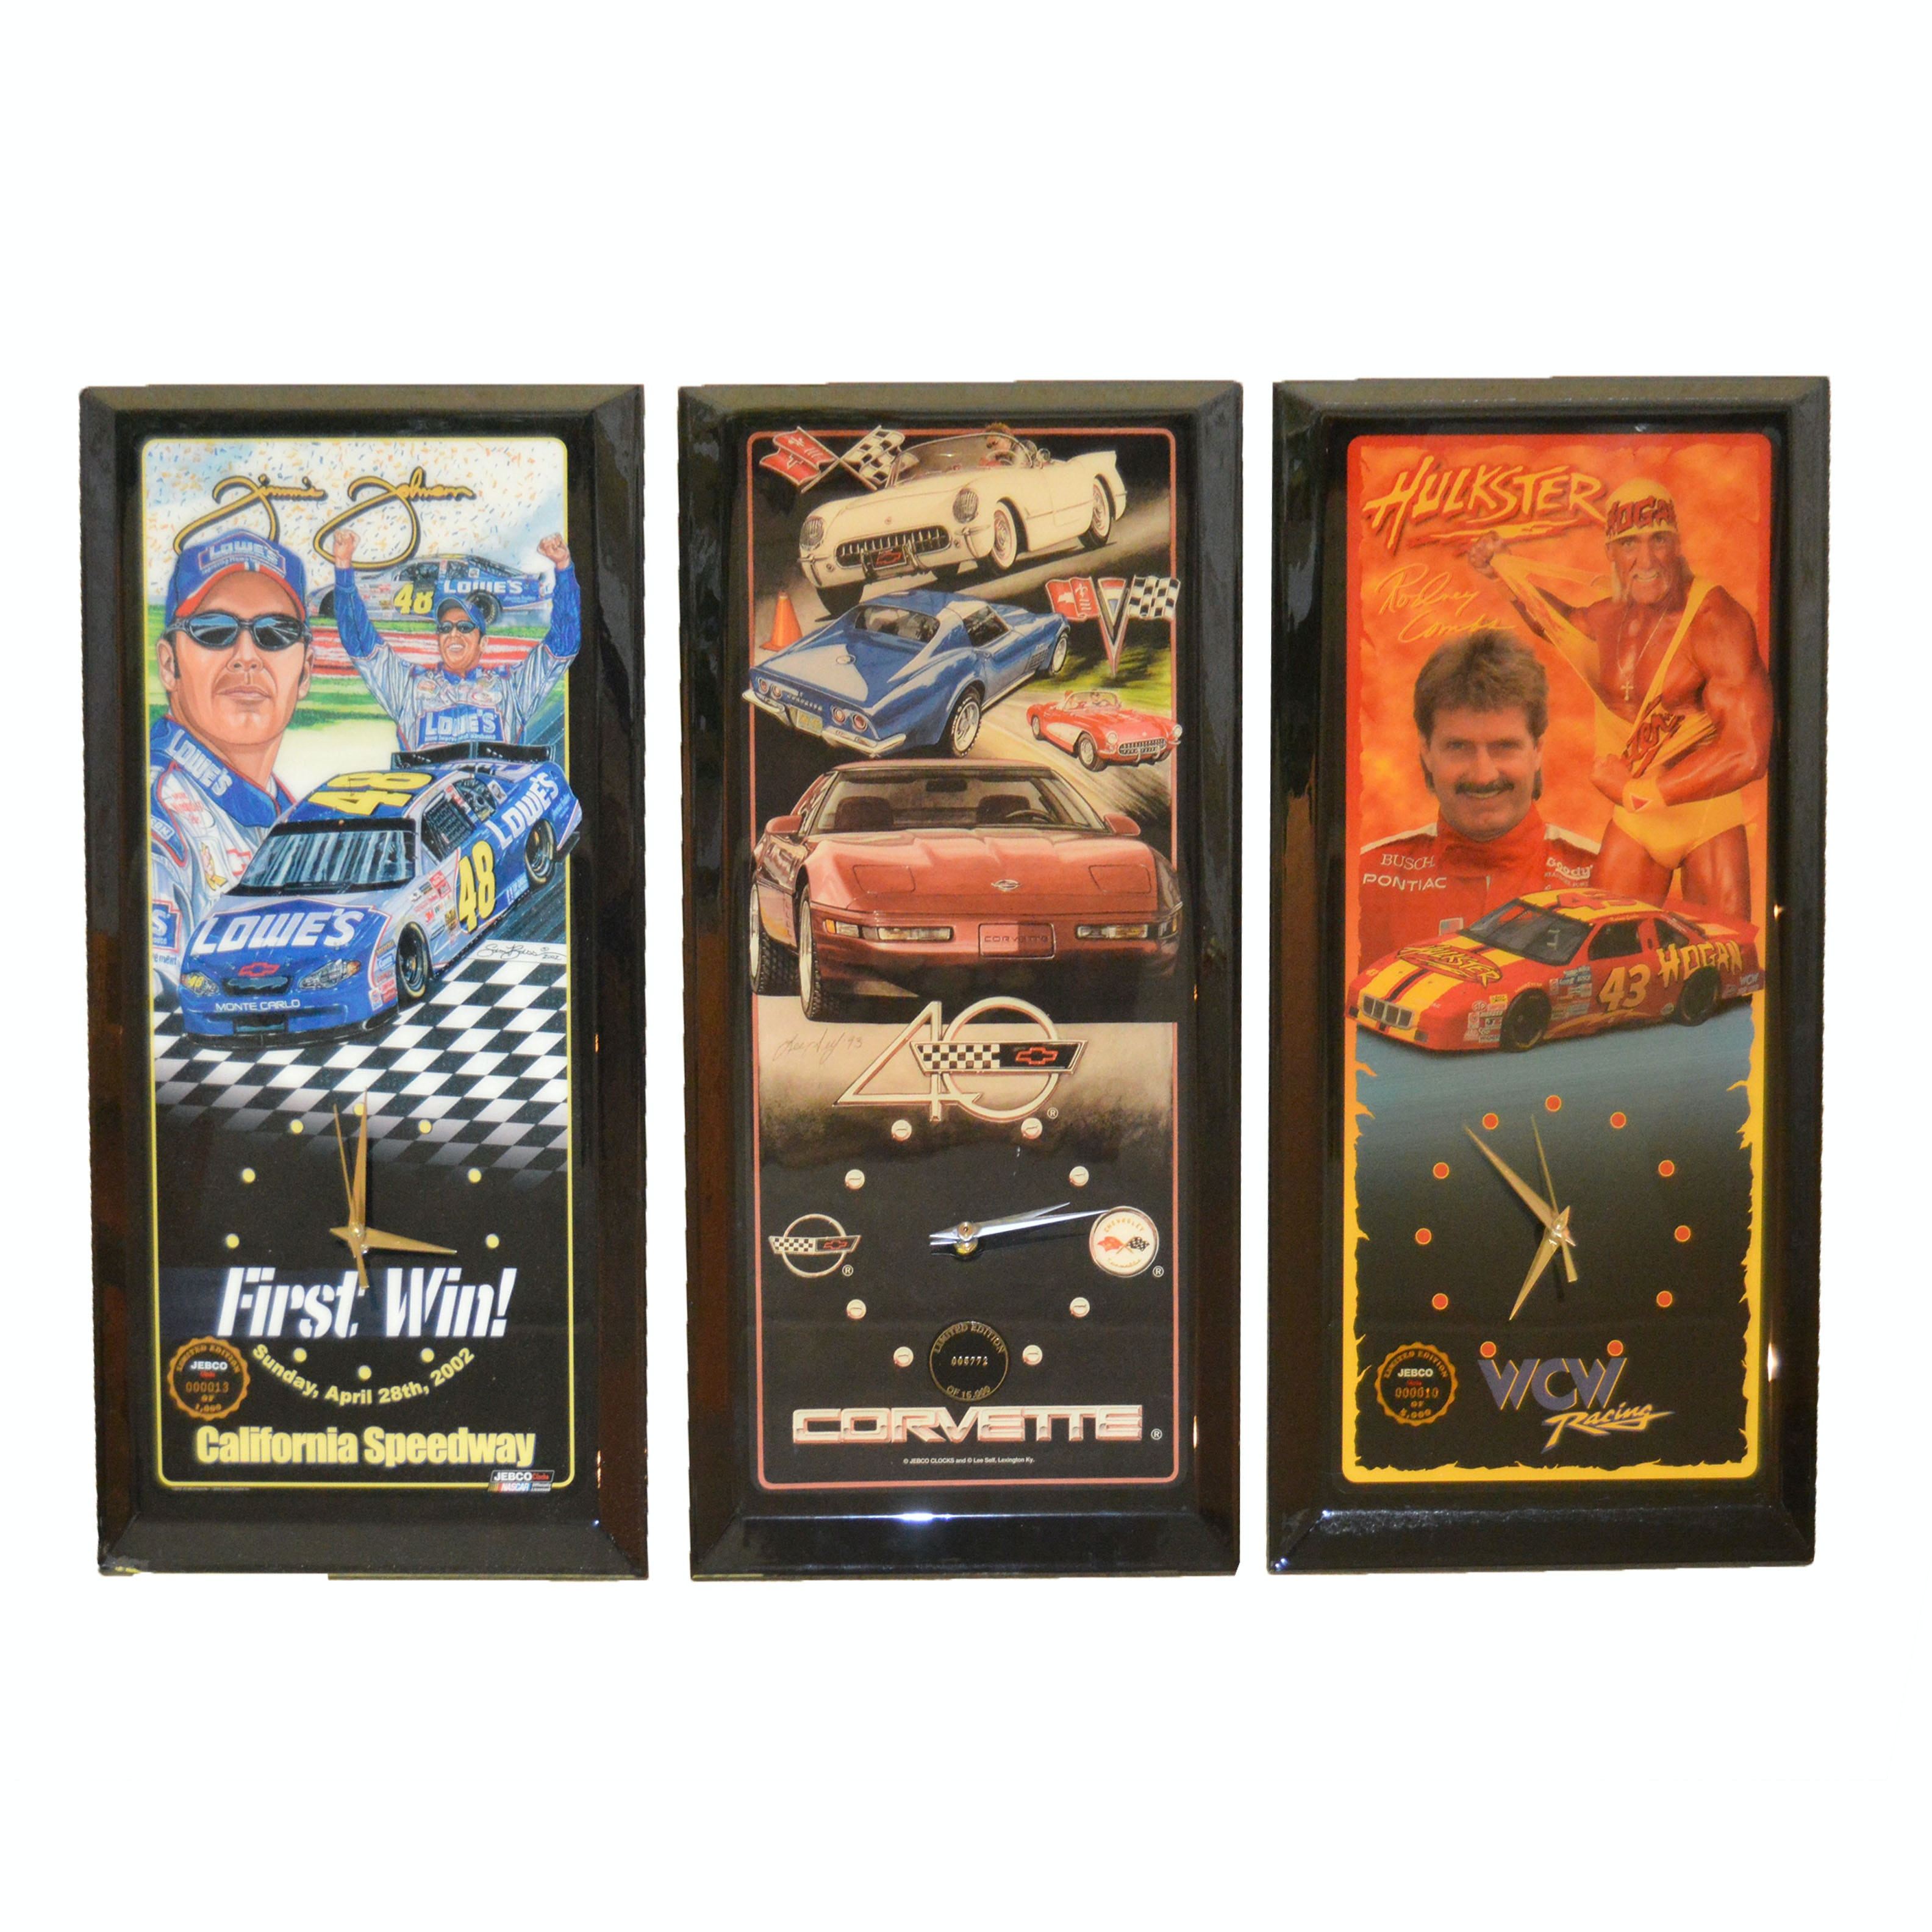 Limited Edition Racing Clocks by Jebco, Including Jimmie Johnson's First Win